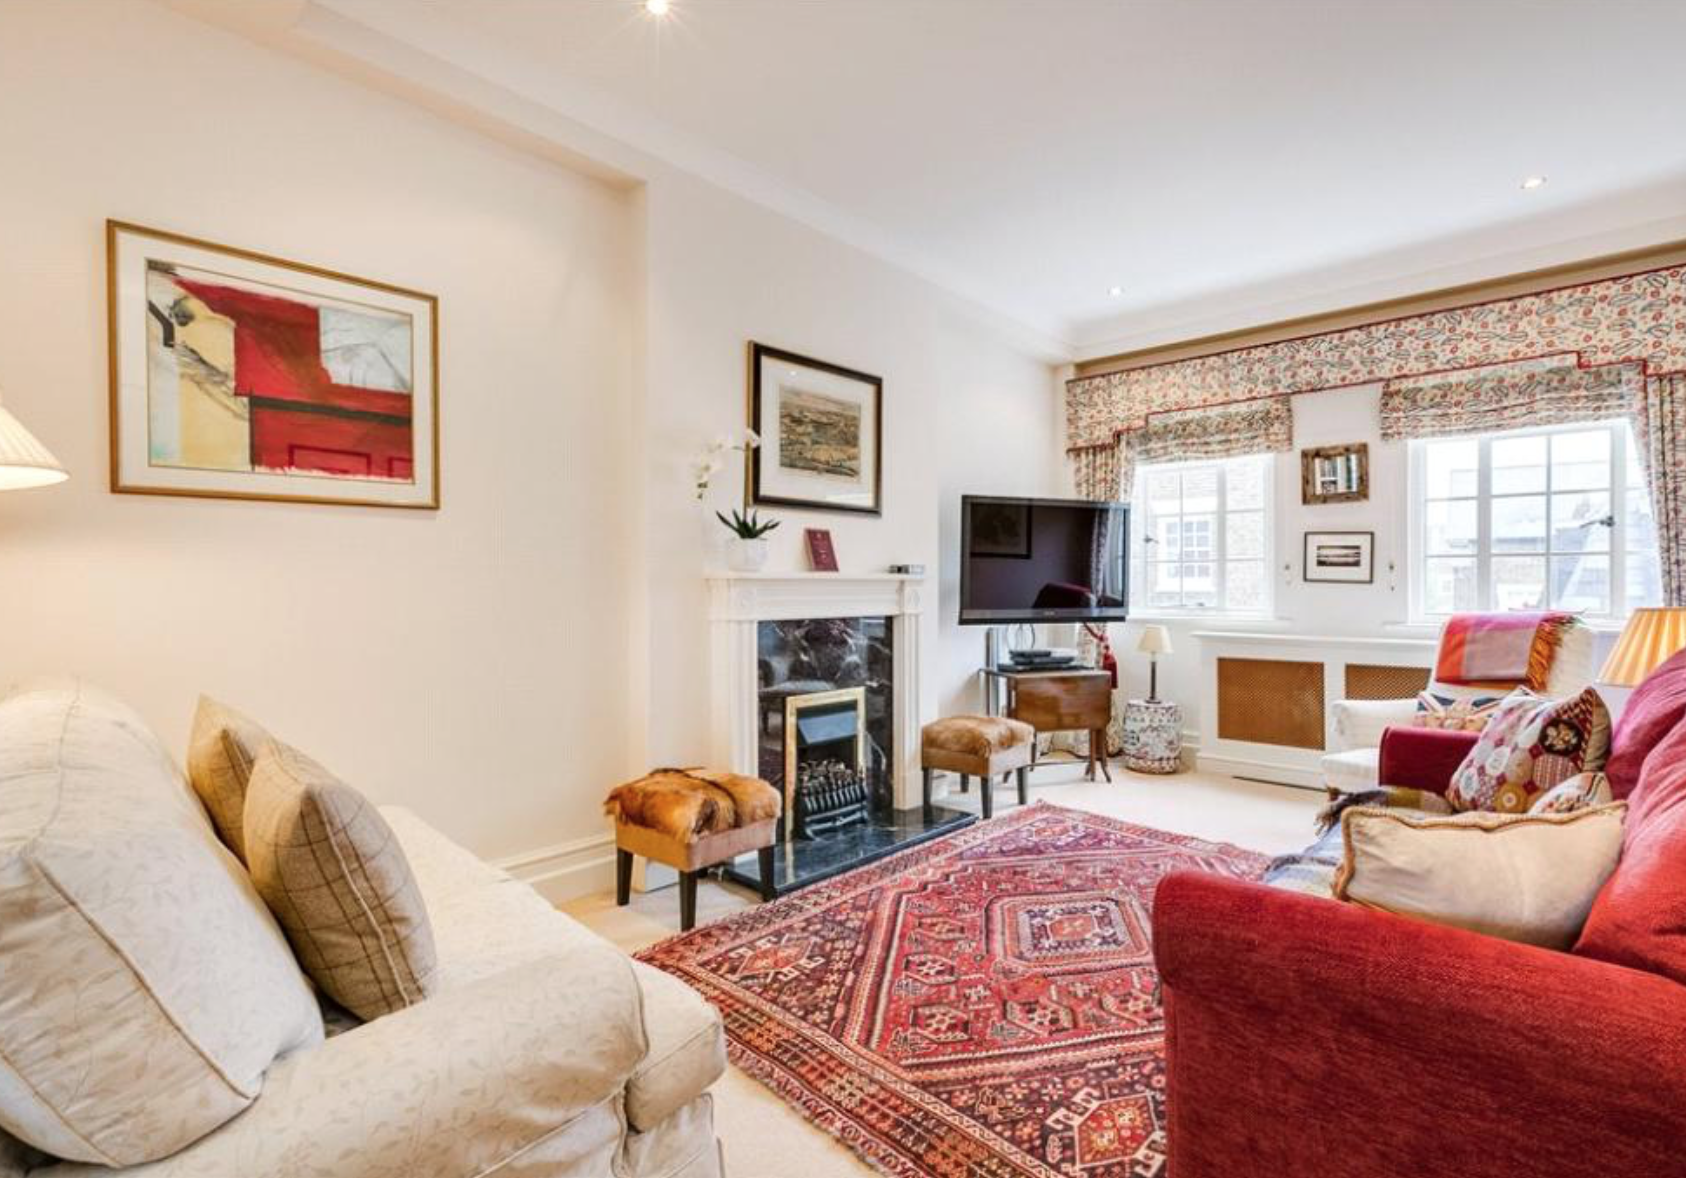 Kate's London apartment from her single days is for sale and we're surprised by the decor